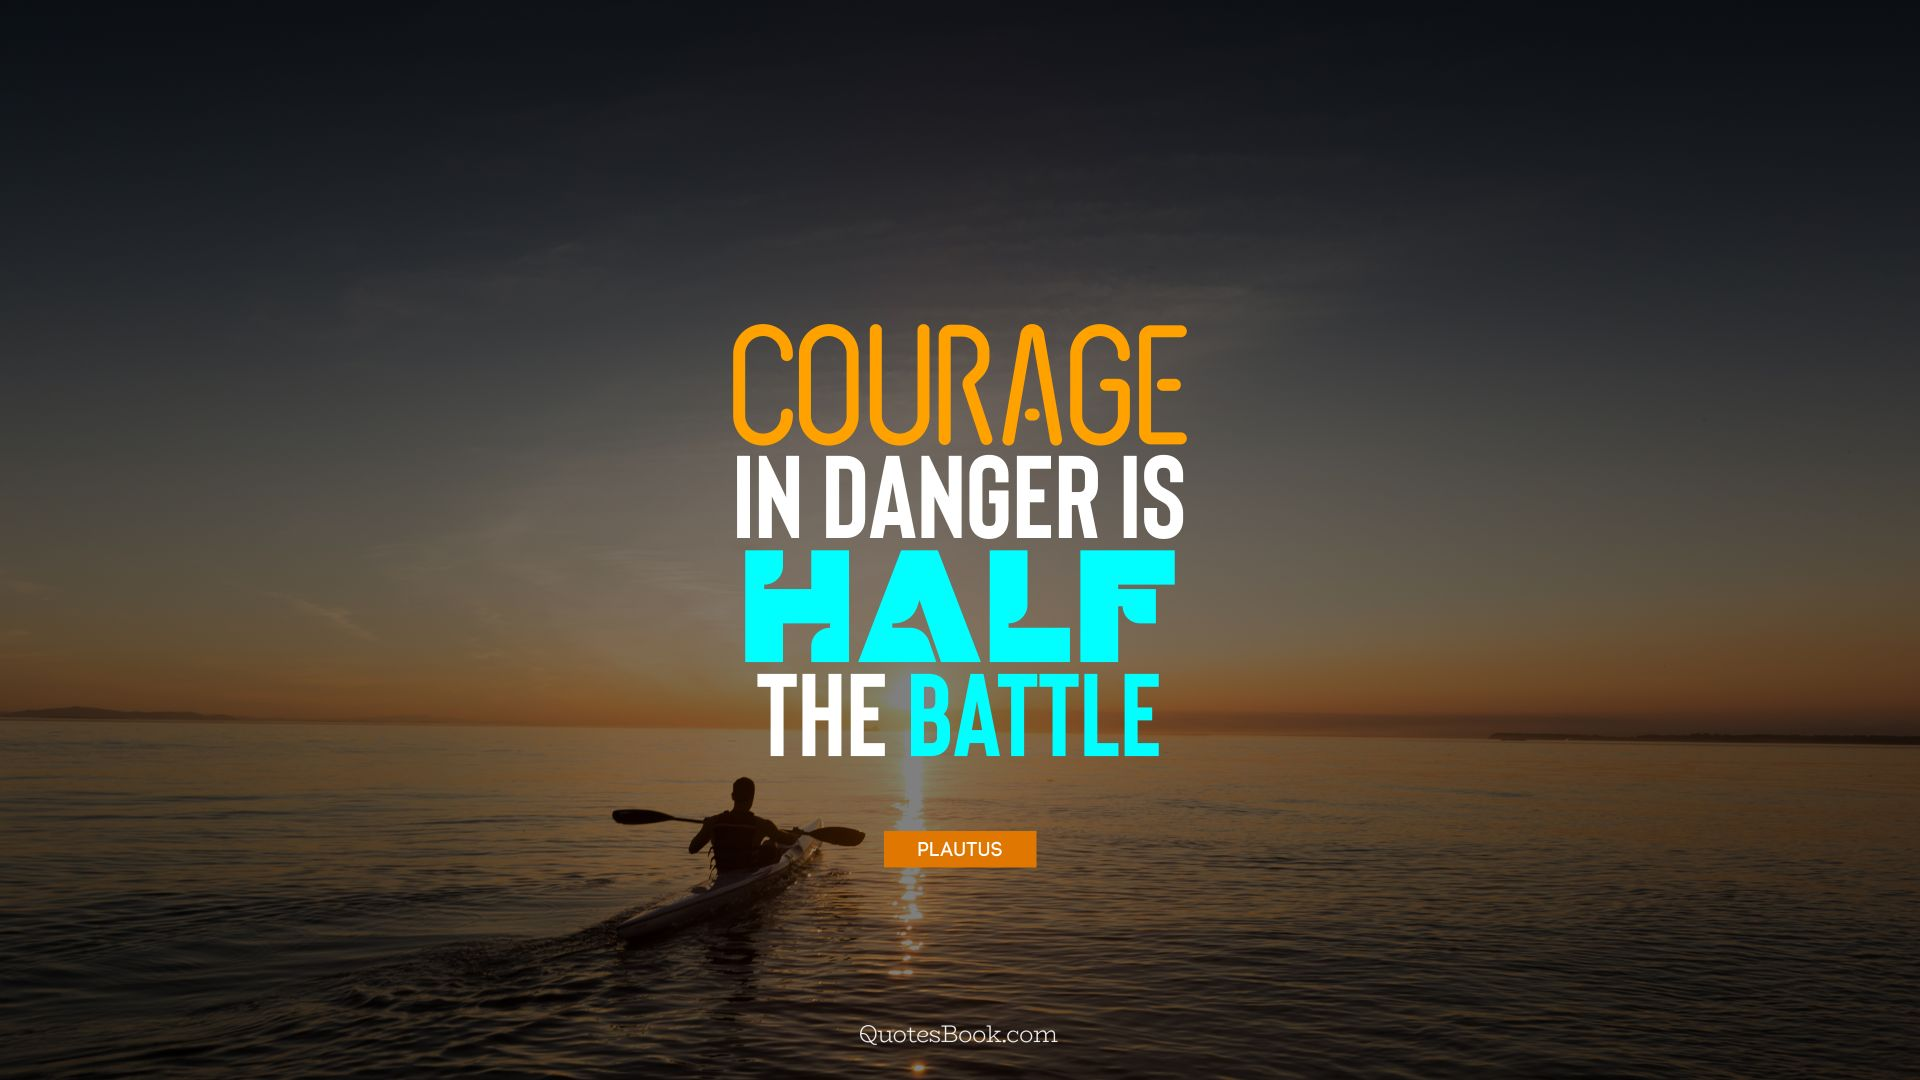 Courage in danger is half the battle. - Quote by Plautus